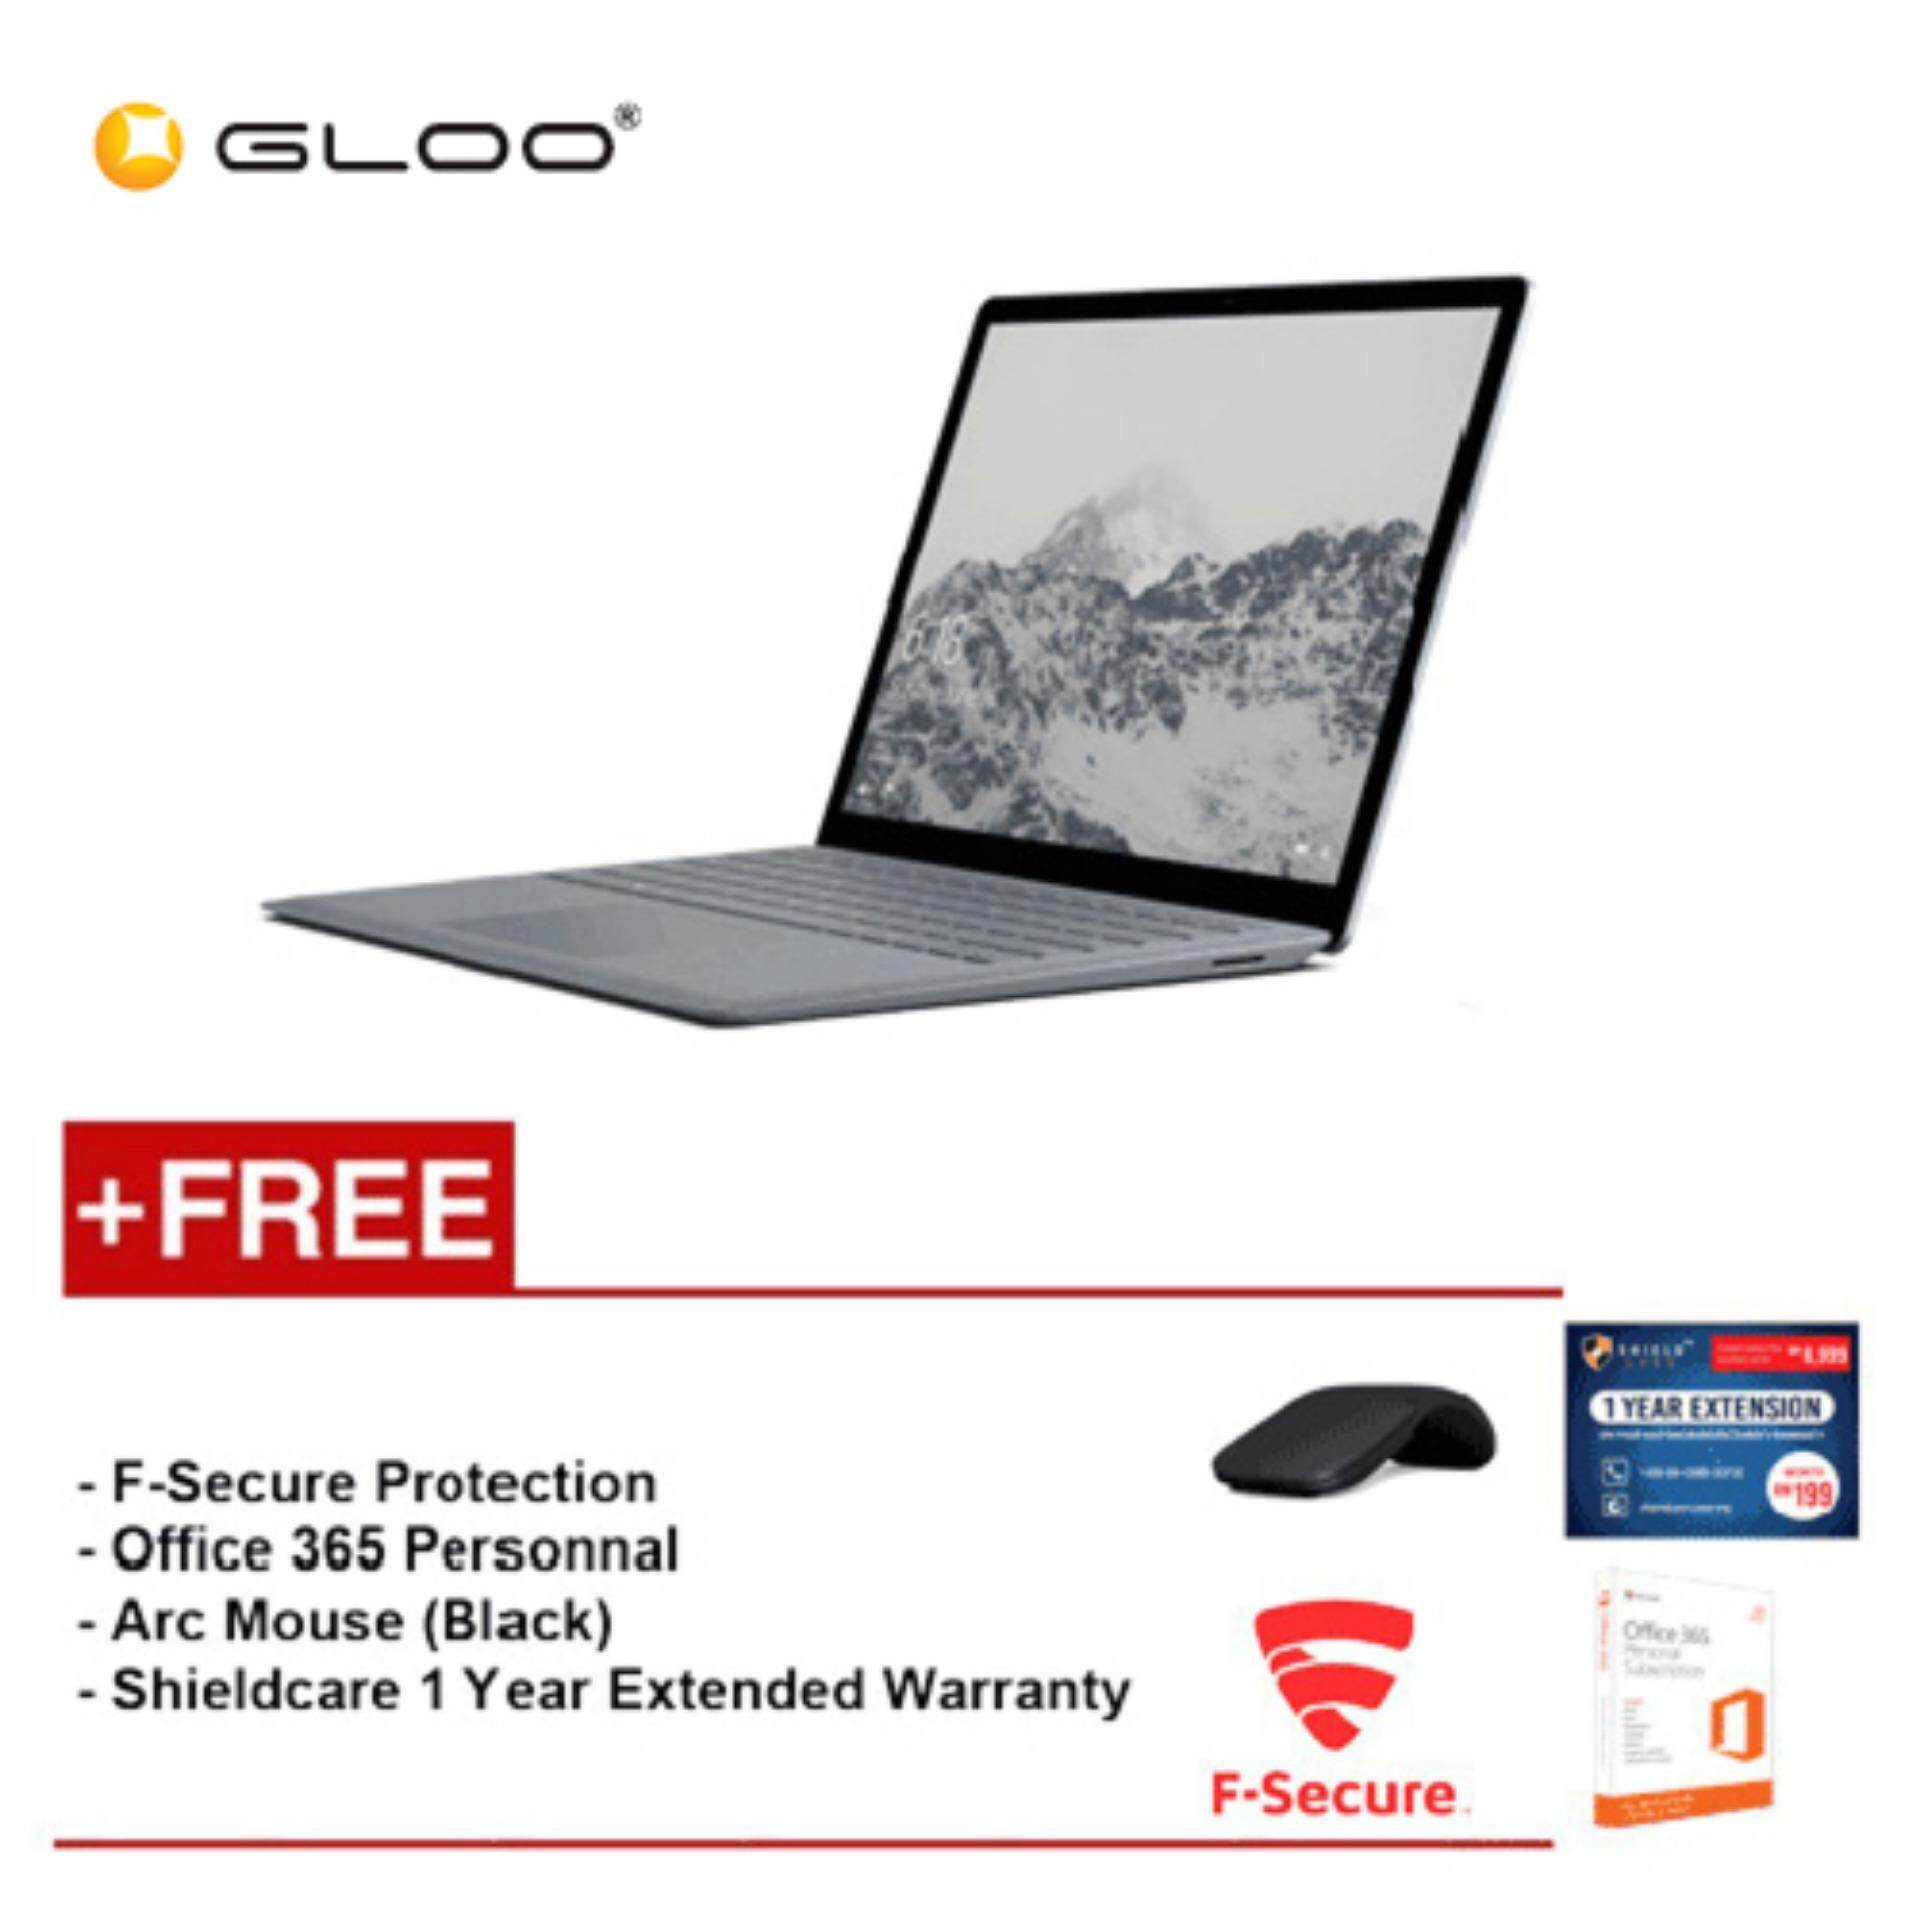 Surface Laptop Core i5/8GB RAM - 256GB + Shield Care 1YR Extended Warranty + F-Secure End Point Protection + Office 365 Personal + Arc Mouse Black Malaysia